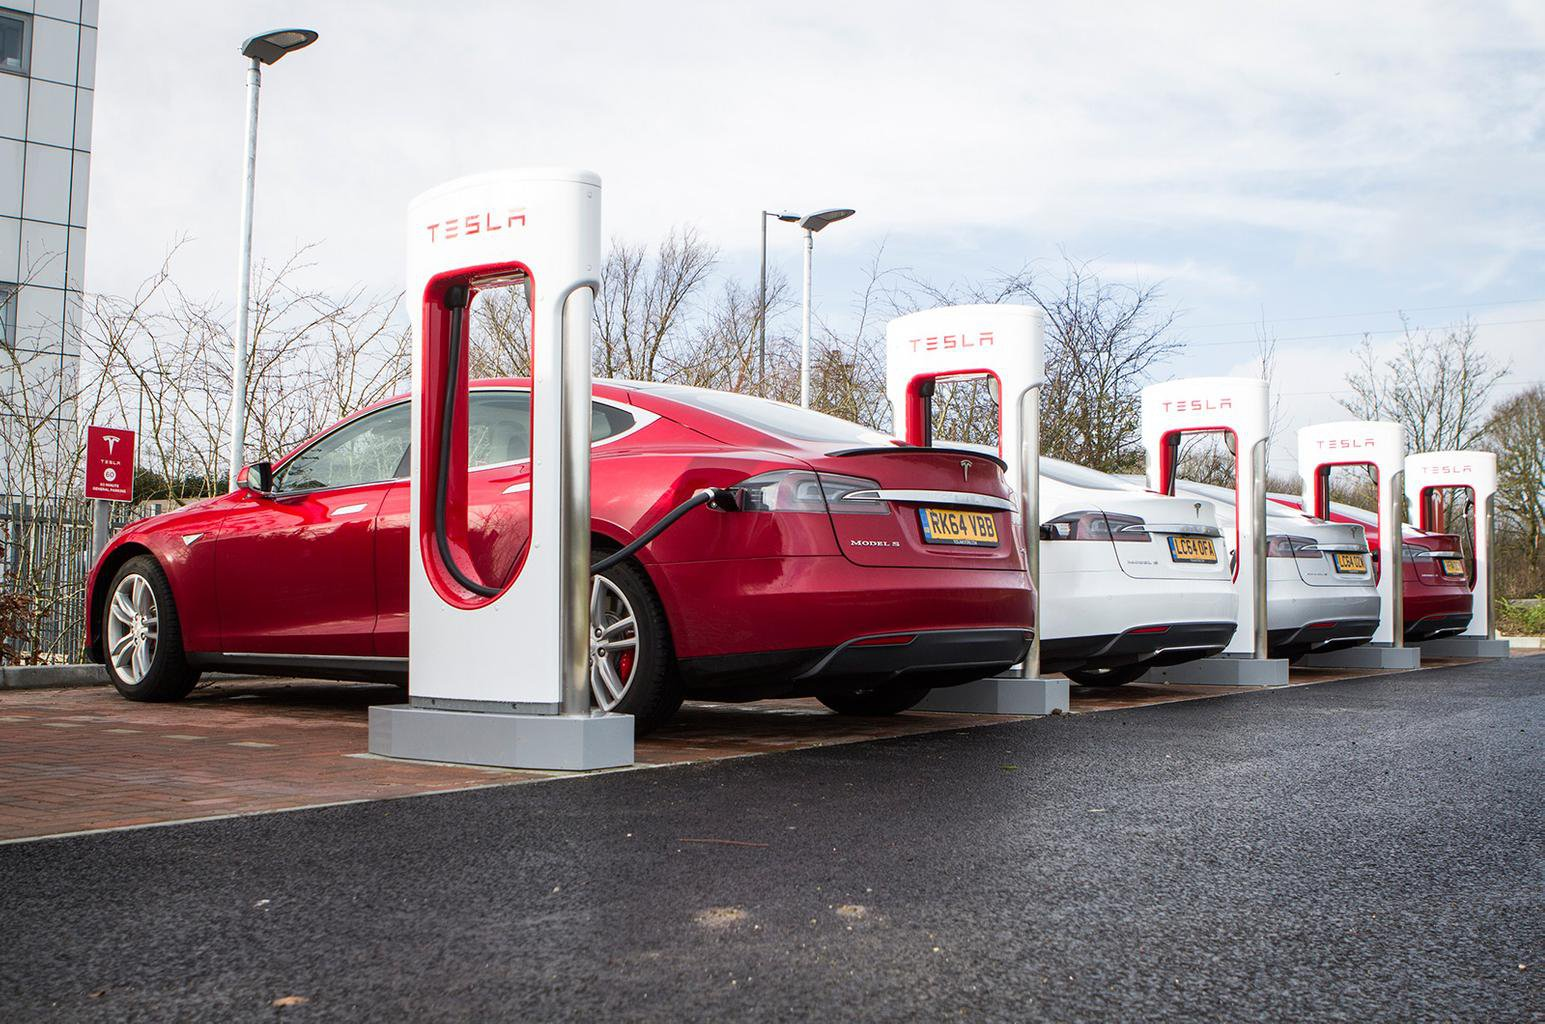 Electric car buyer's guide – everything you need to know